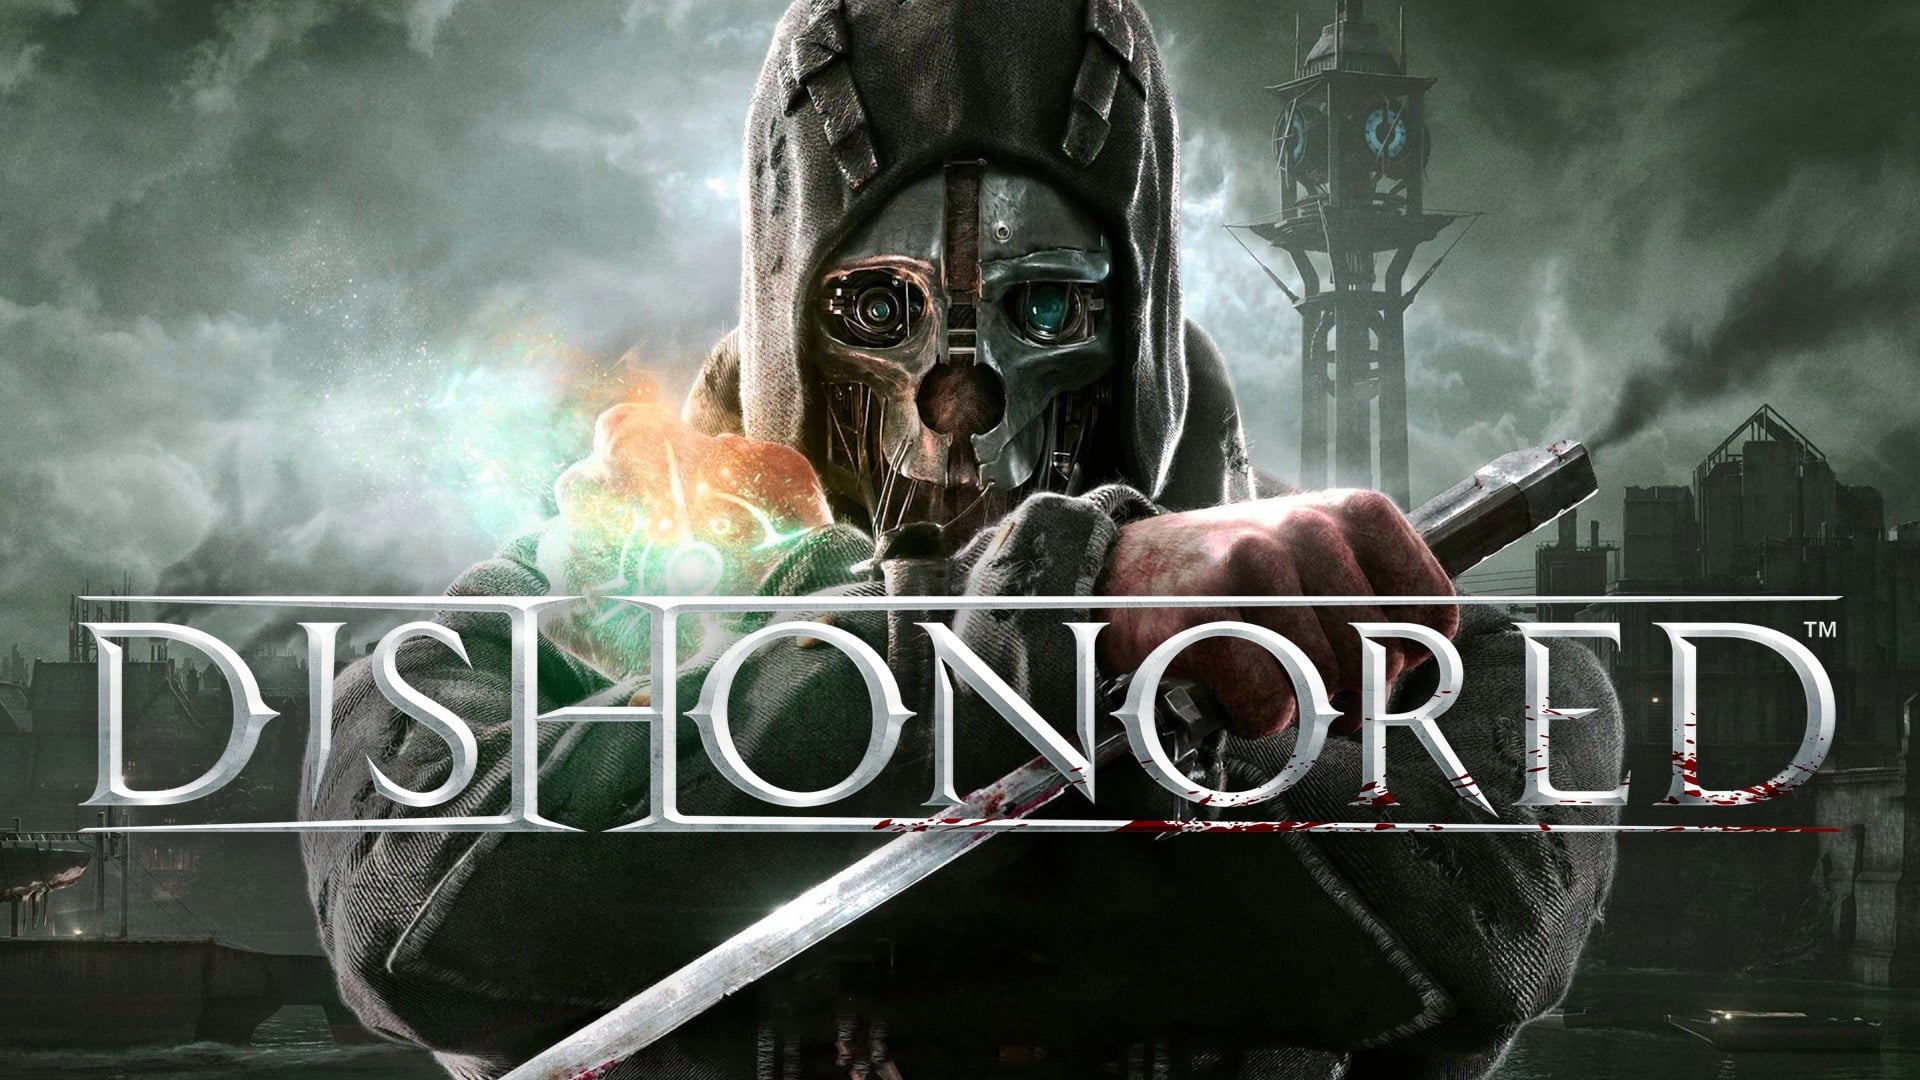 Dishonored-PC-Version-Full-Game-Free-Download-2019.jpg